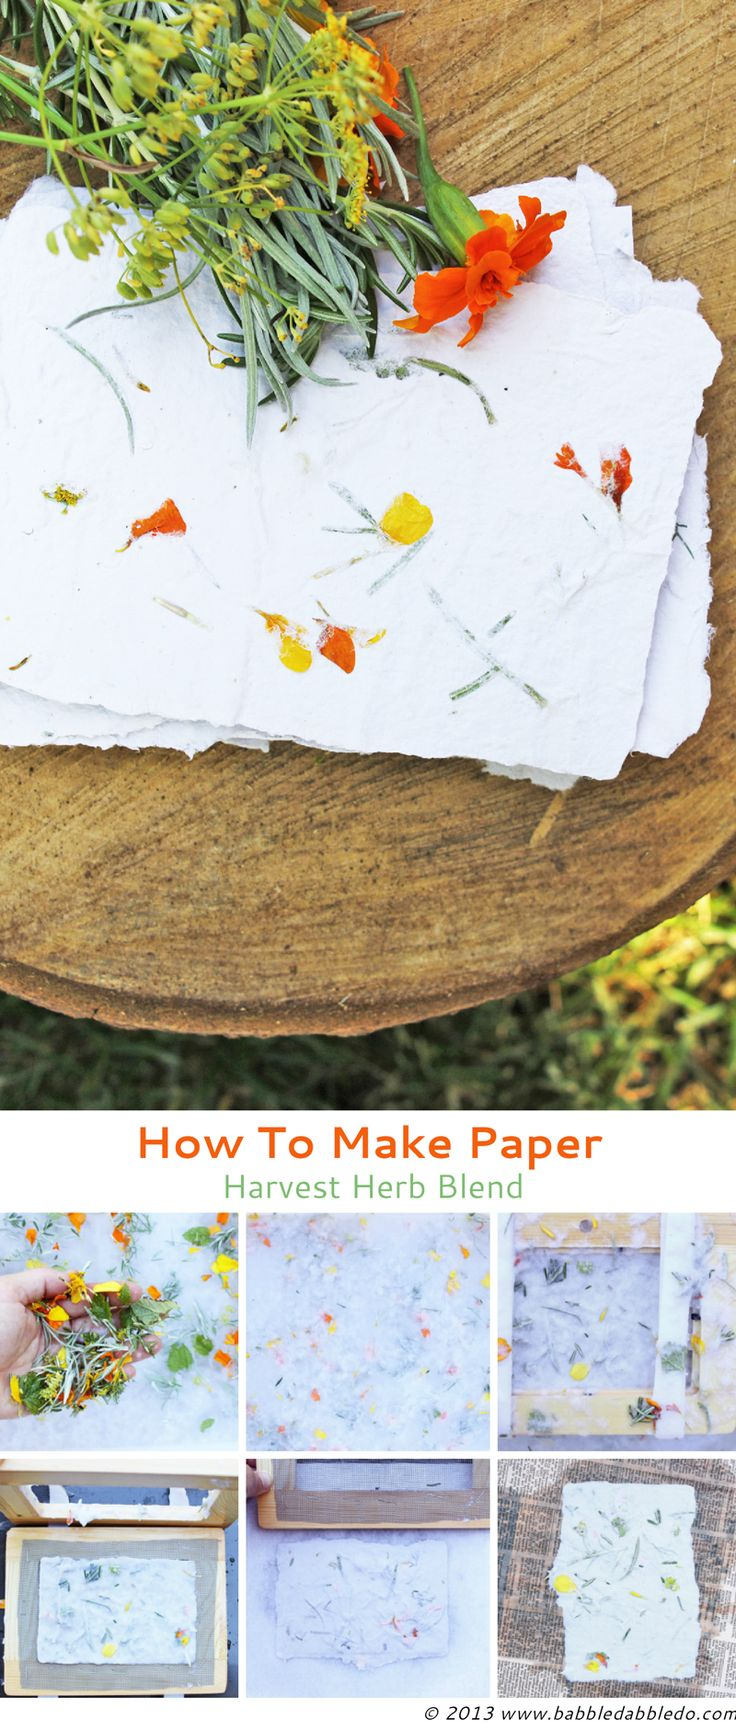 Learn how to make paper with this step-by-step tutorial. *Great combinations here; fun for kiddos, too!